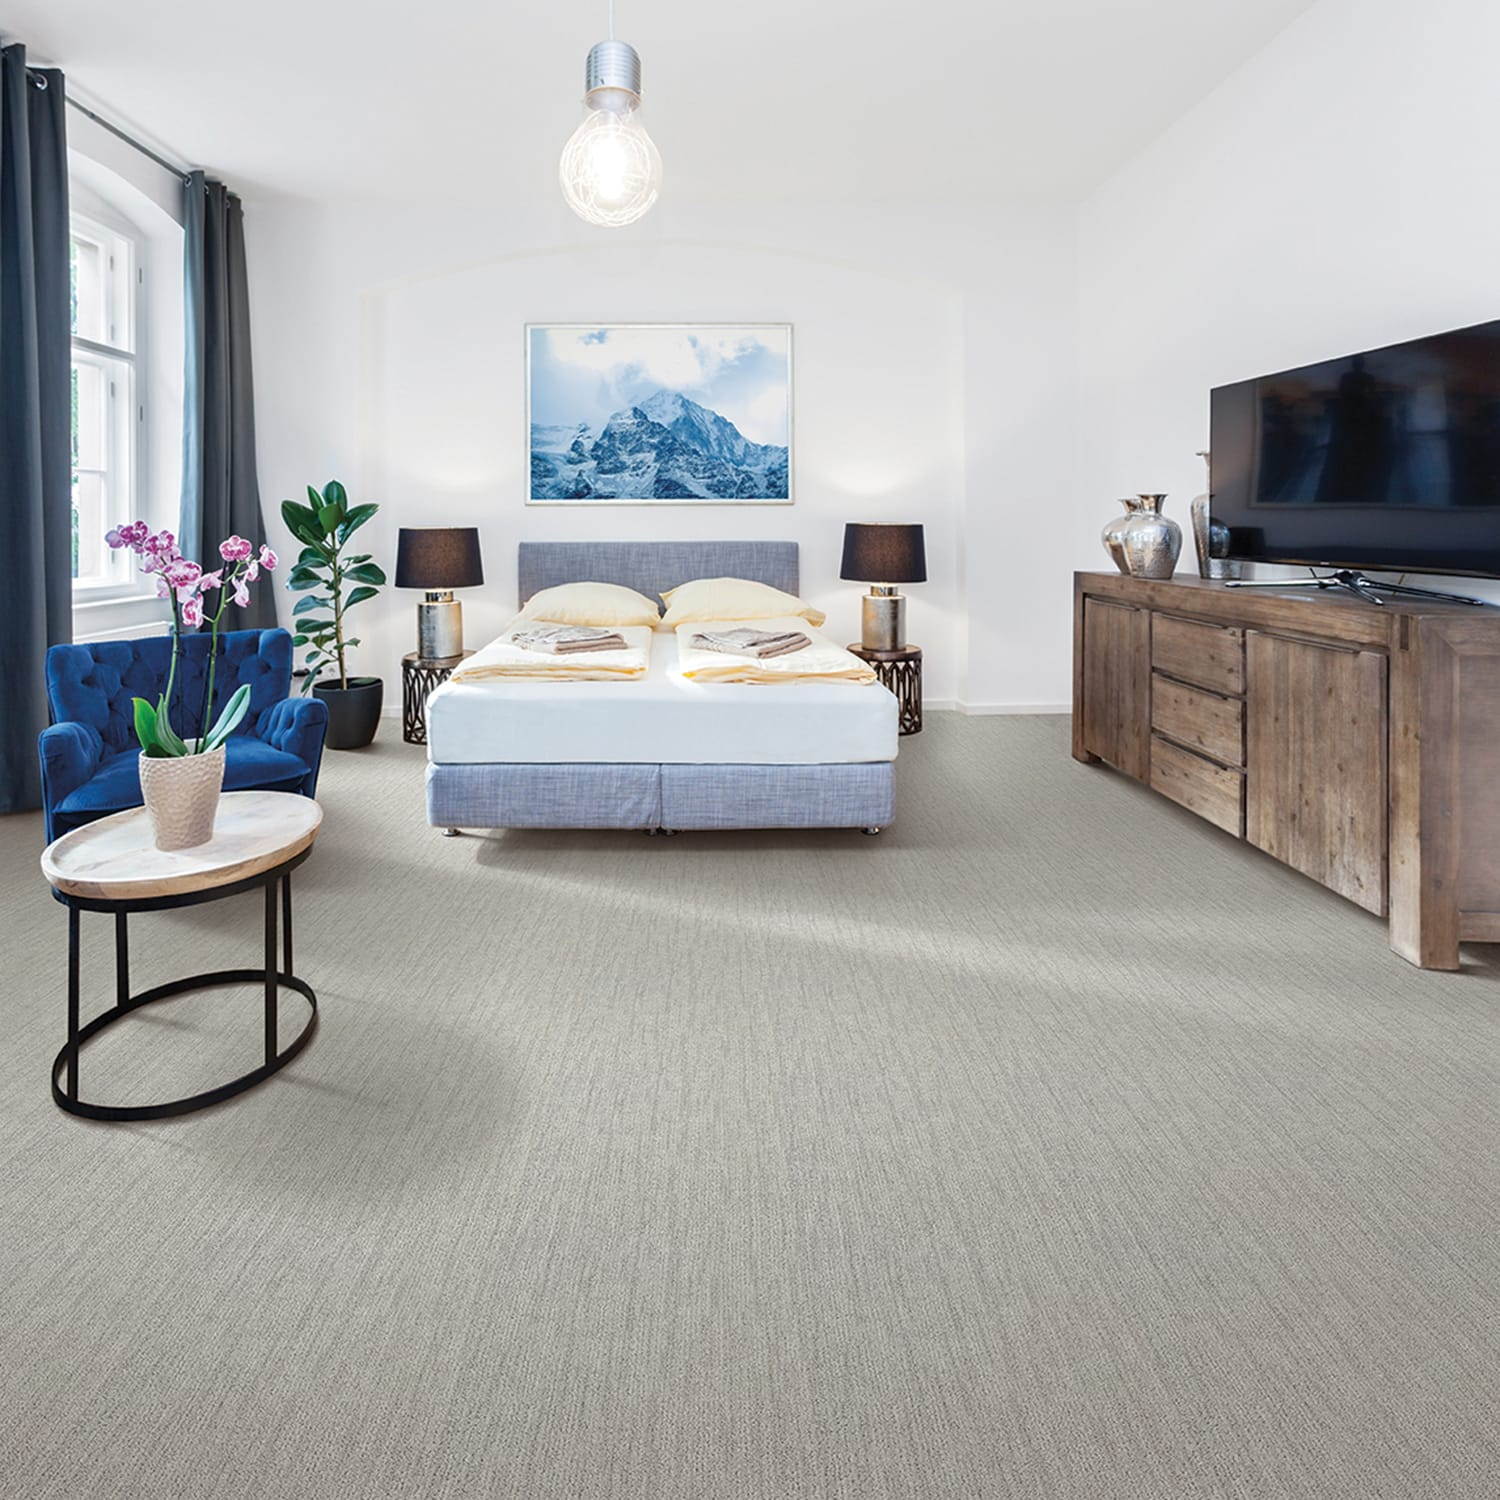 kraus carpet- ambiance- vancouver- cmo floors- flooring